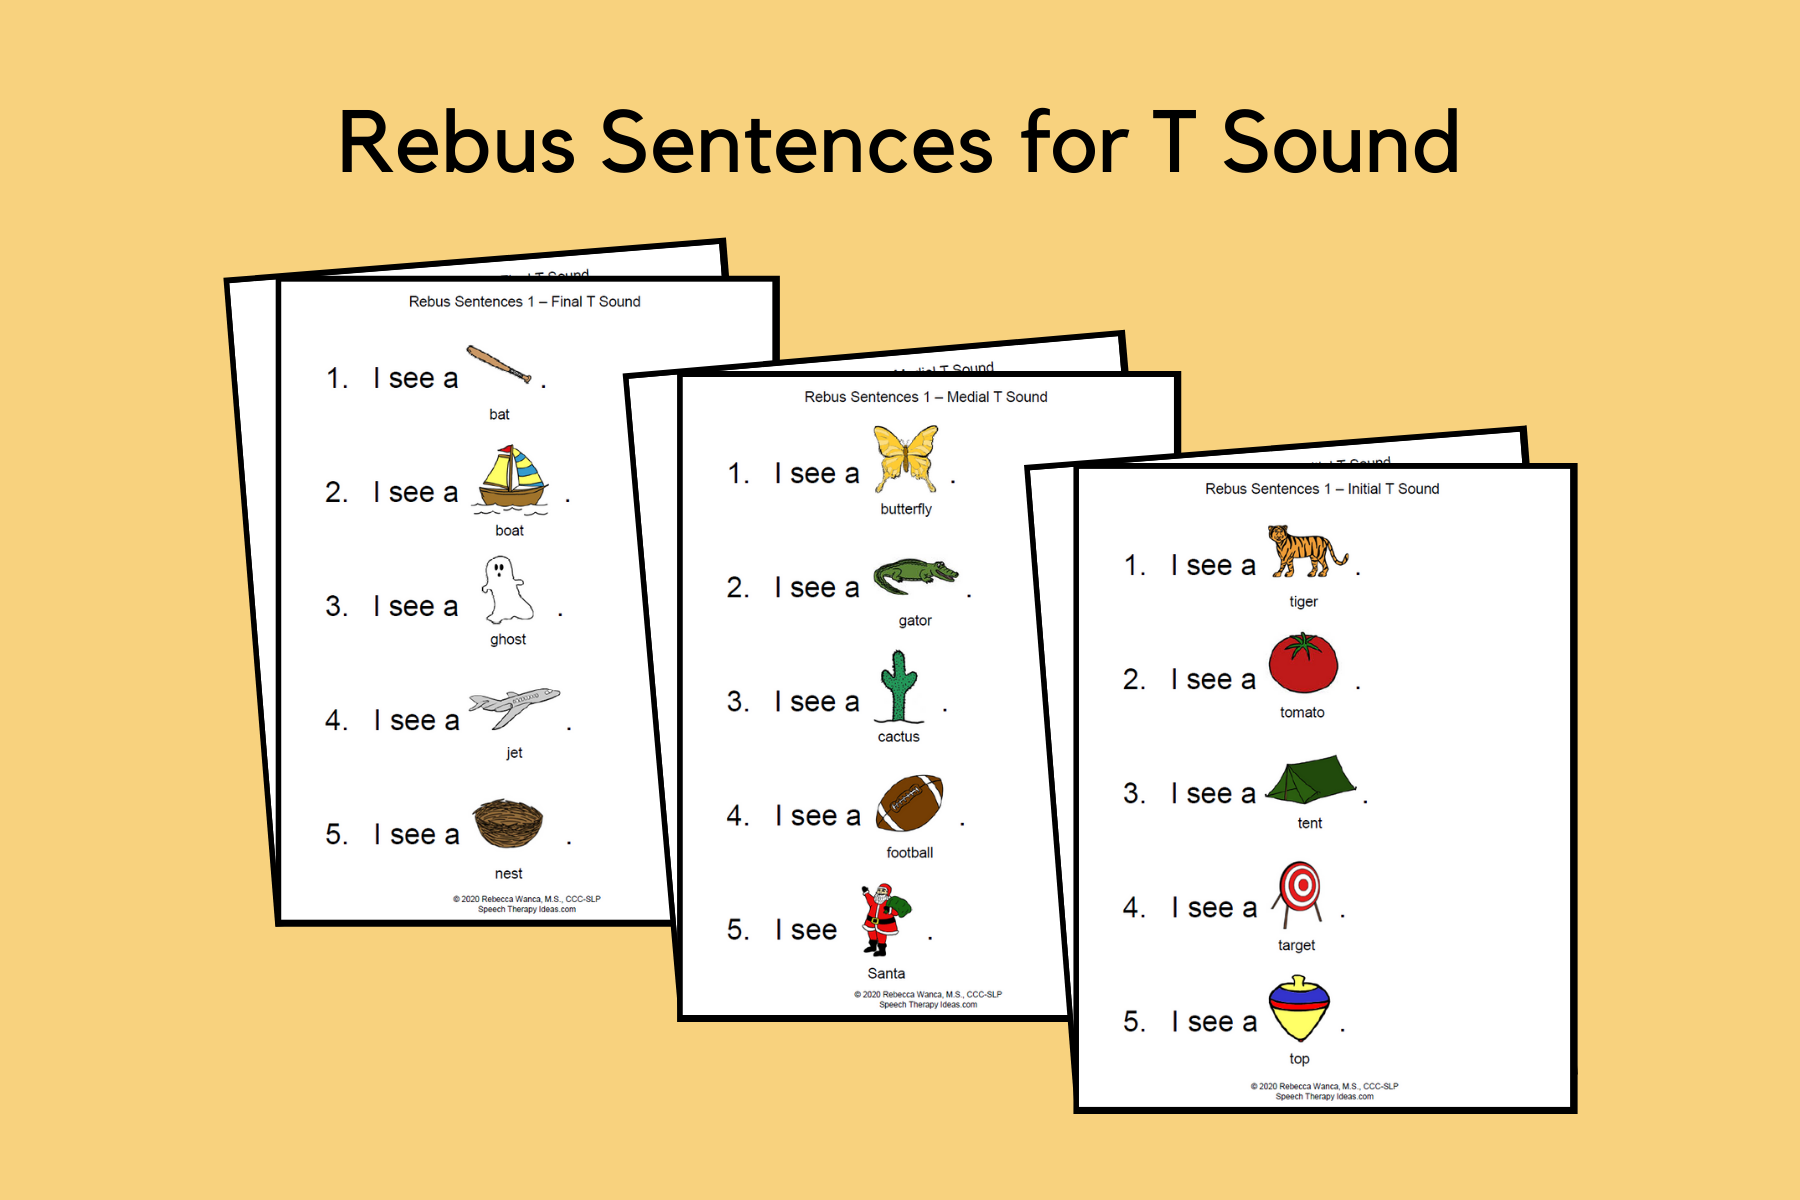 Rebus Sentences for T Sound